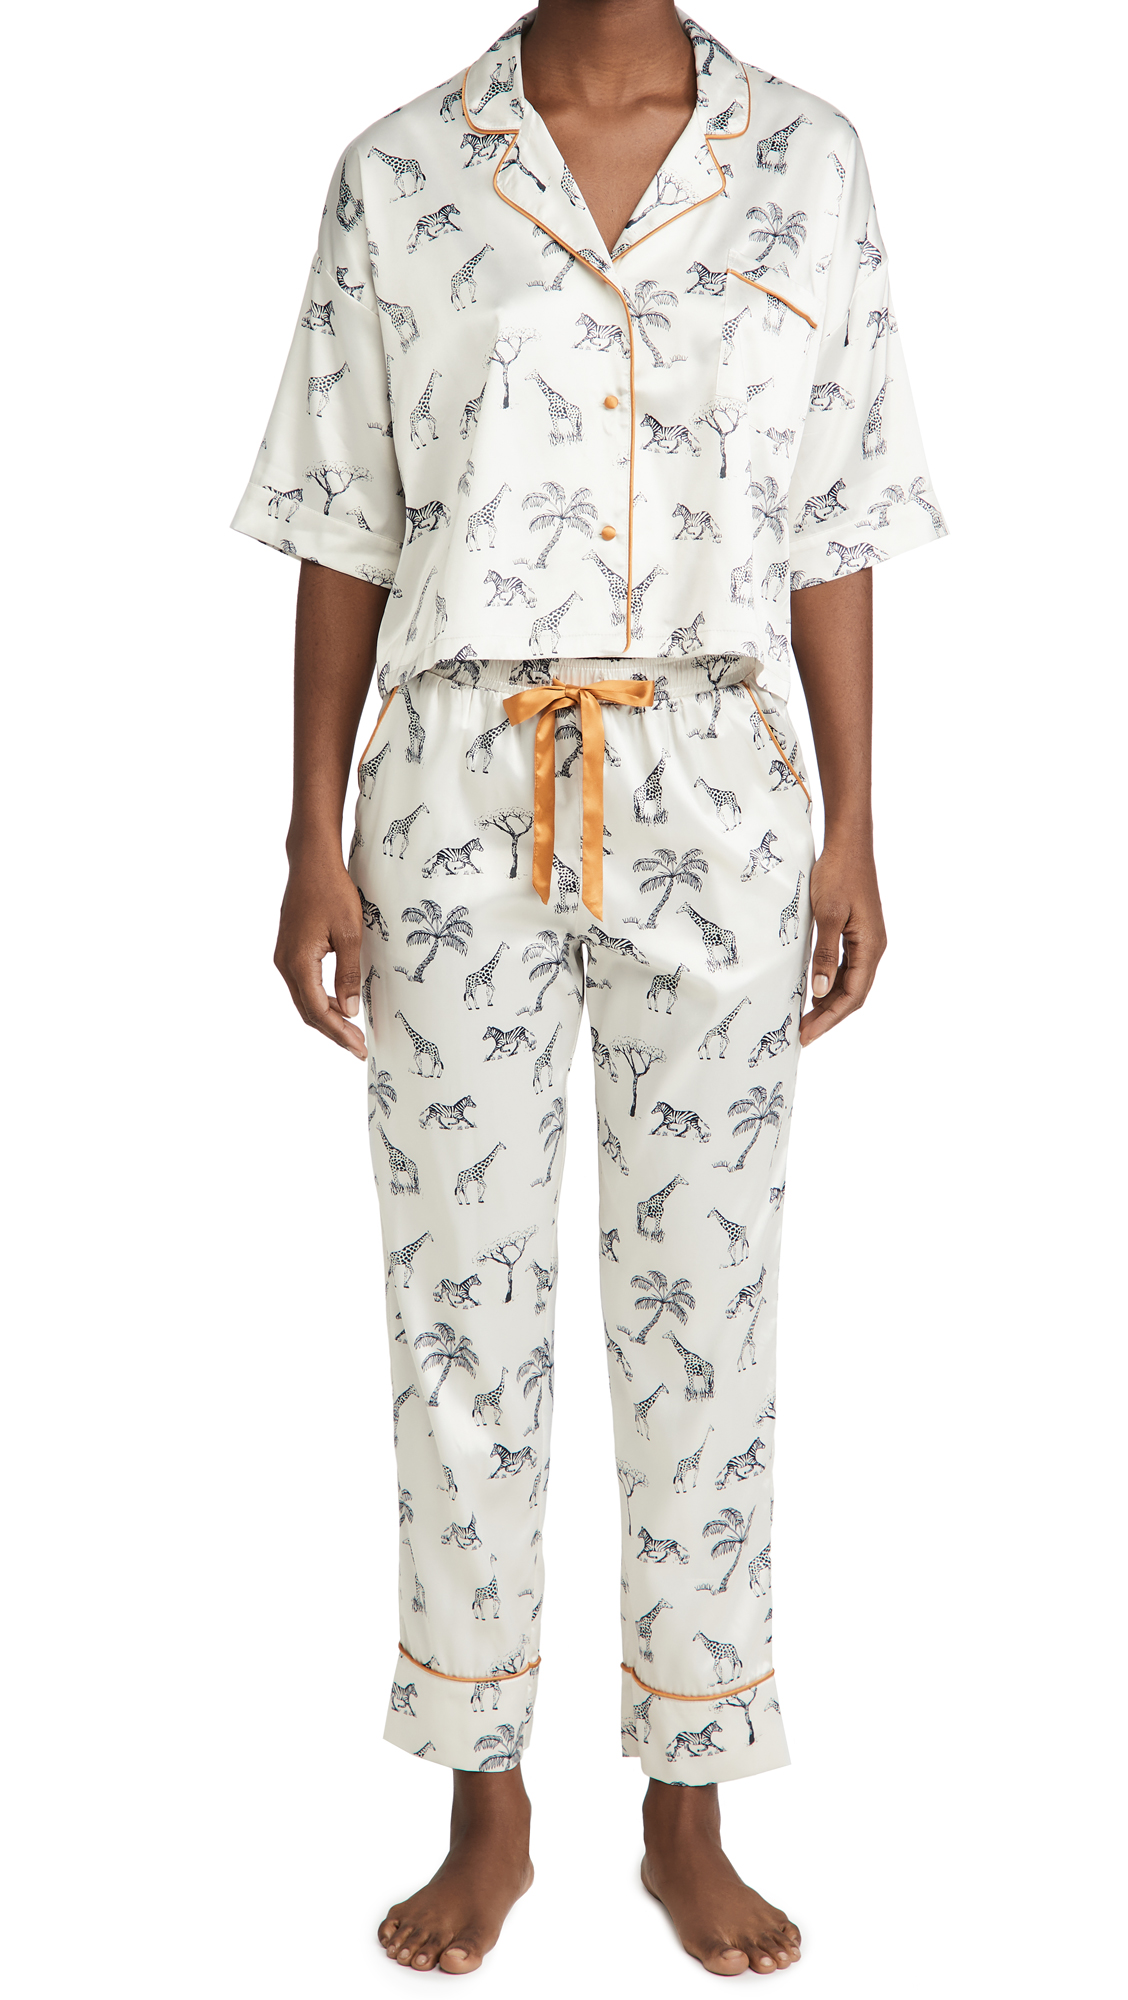 Z Supply Jolie Safari Pajama Set